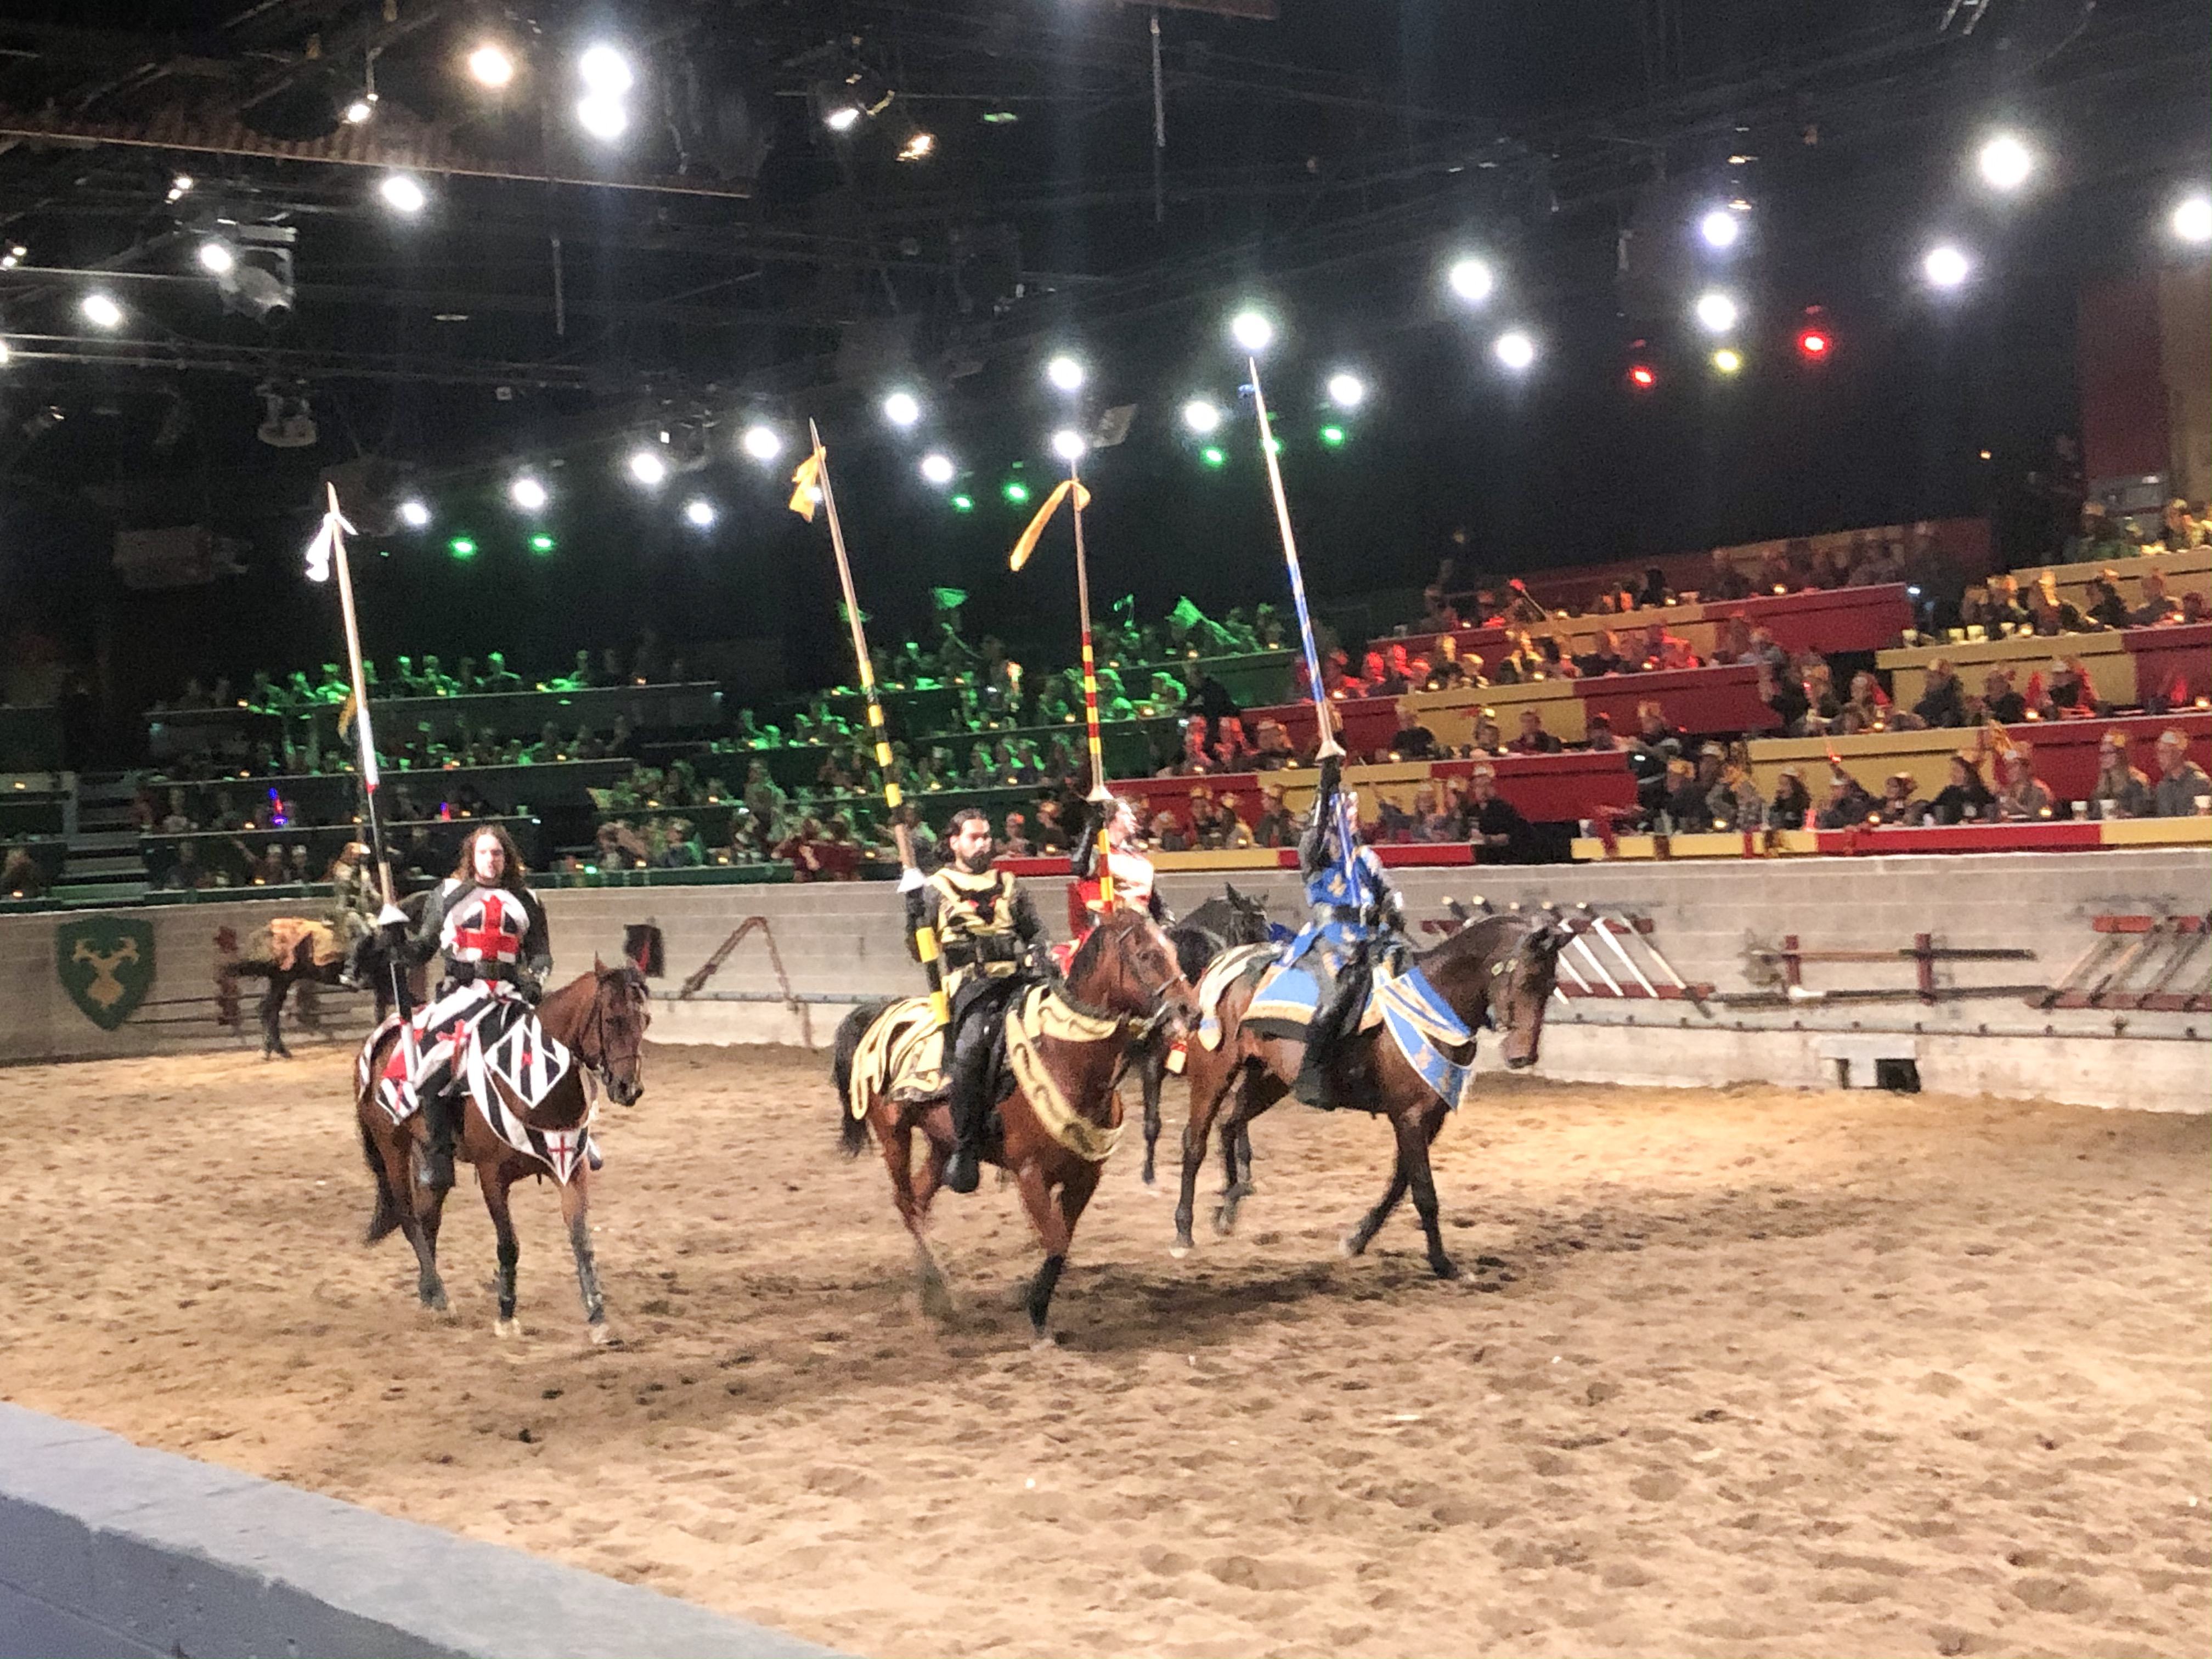 Medieval Times Dinner & Tournament review on Livin' Life with Style